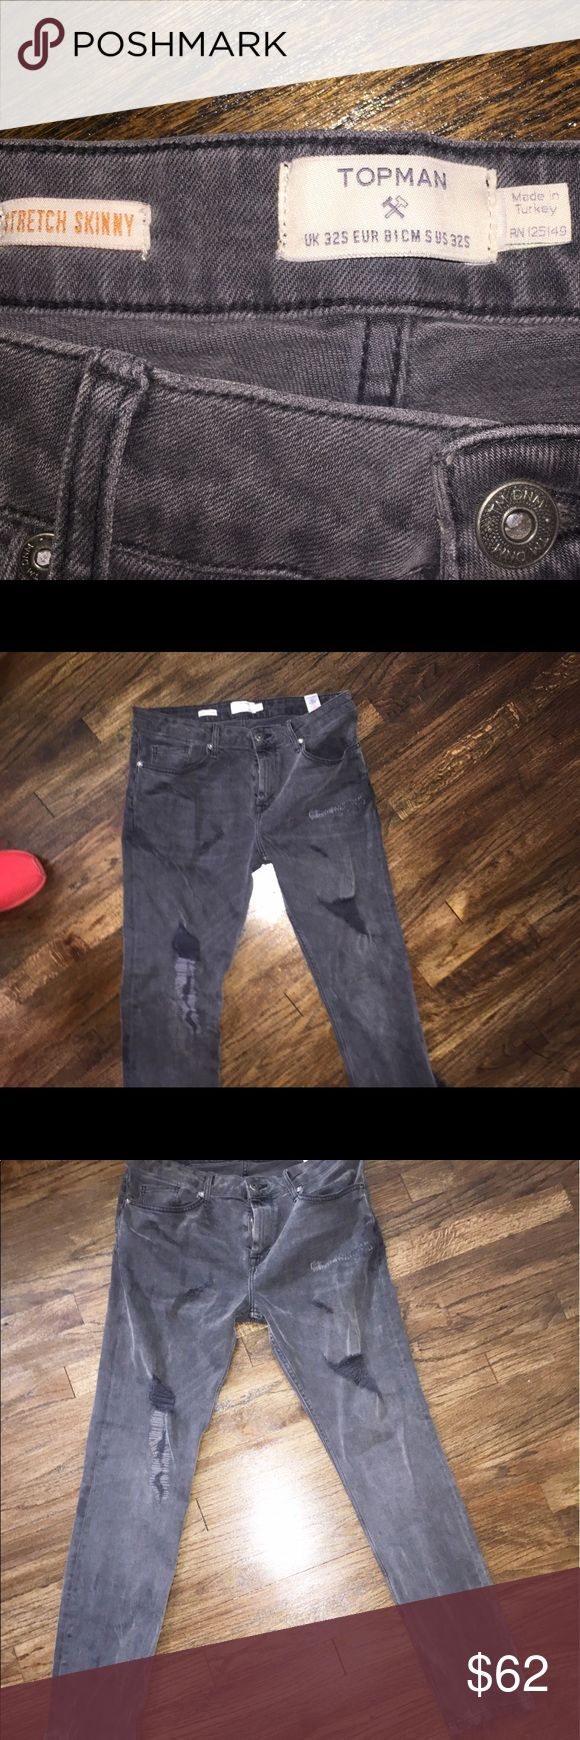 TOPMAN JEANS/ ALL BLACK RIPPED Only wore once. Bought them for $80. Topman Jeans Skinny